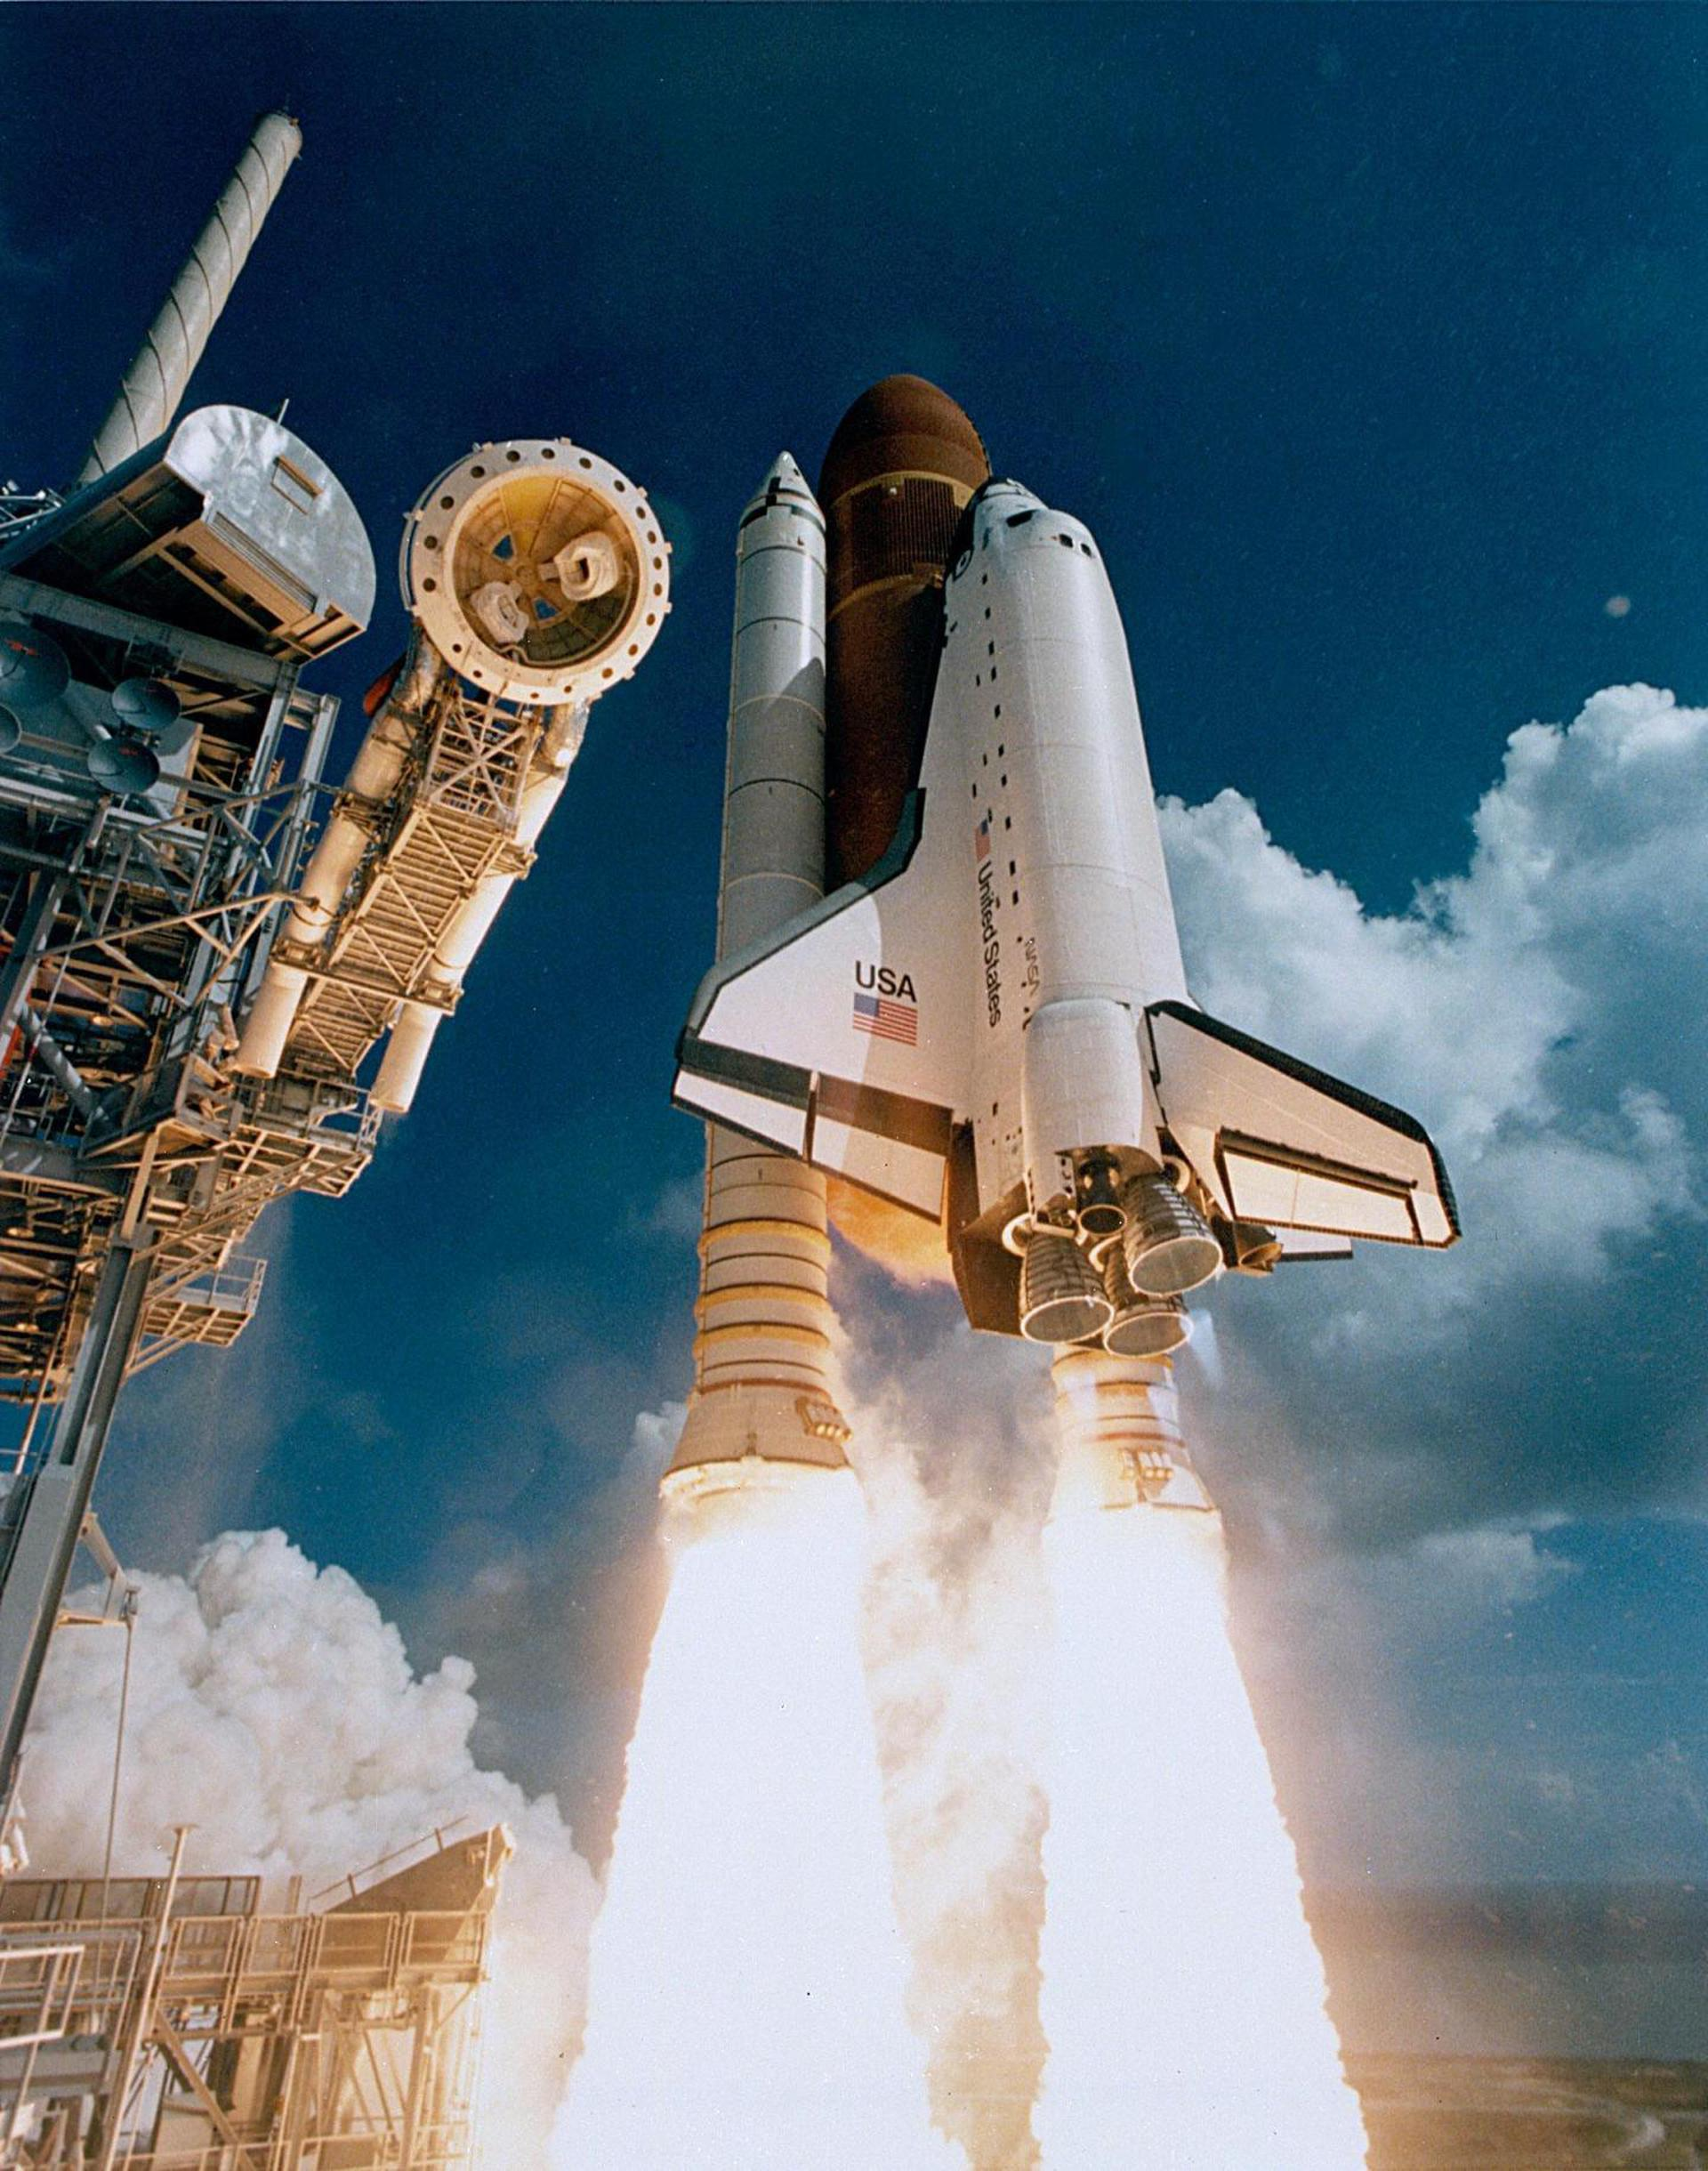 Space Shuttle Atlantis / OV-104 | STS-106